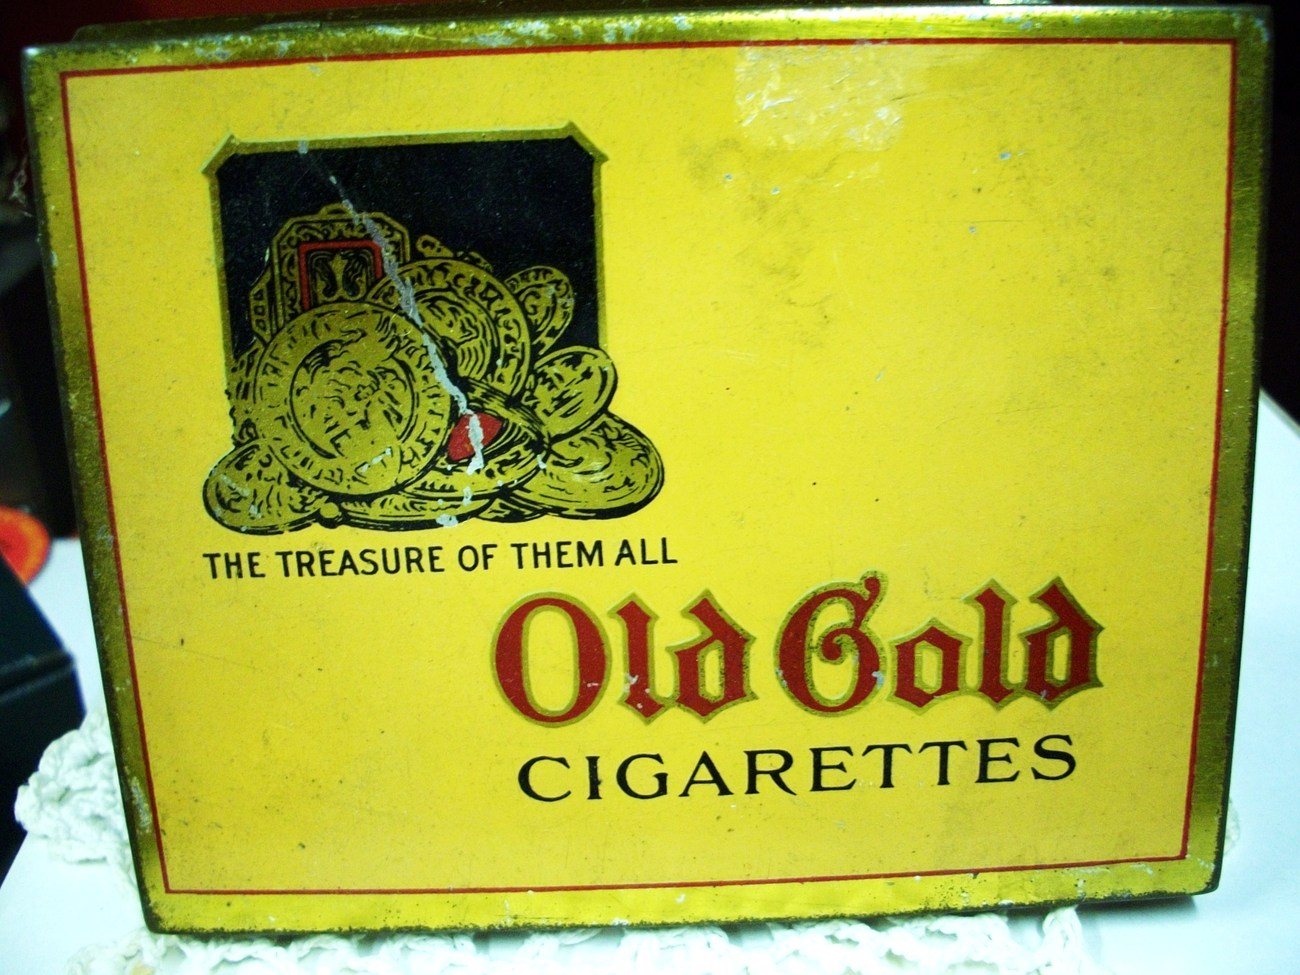 Old gold cigarettes coupons